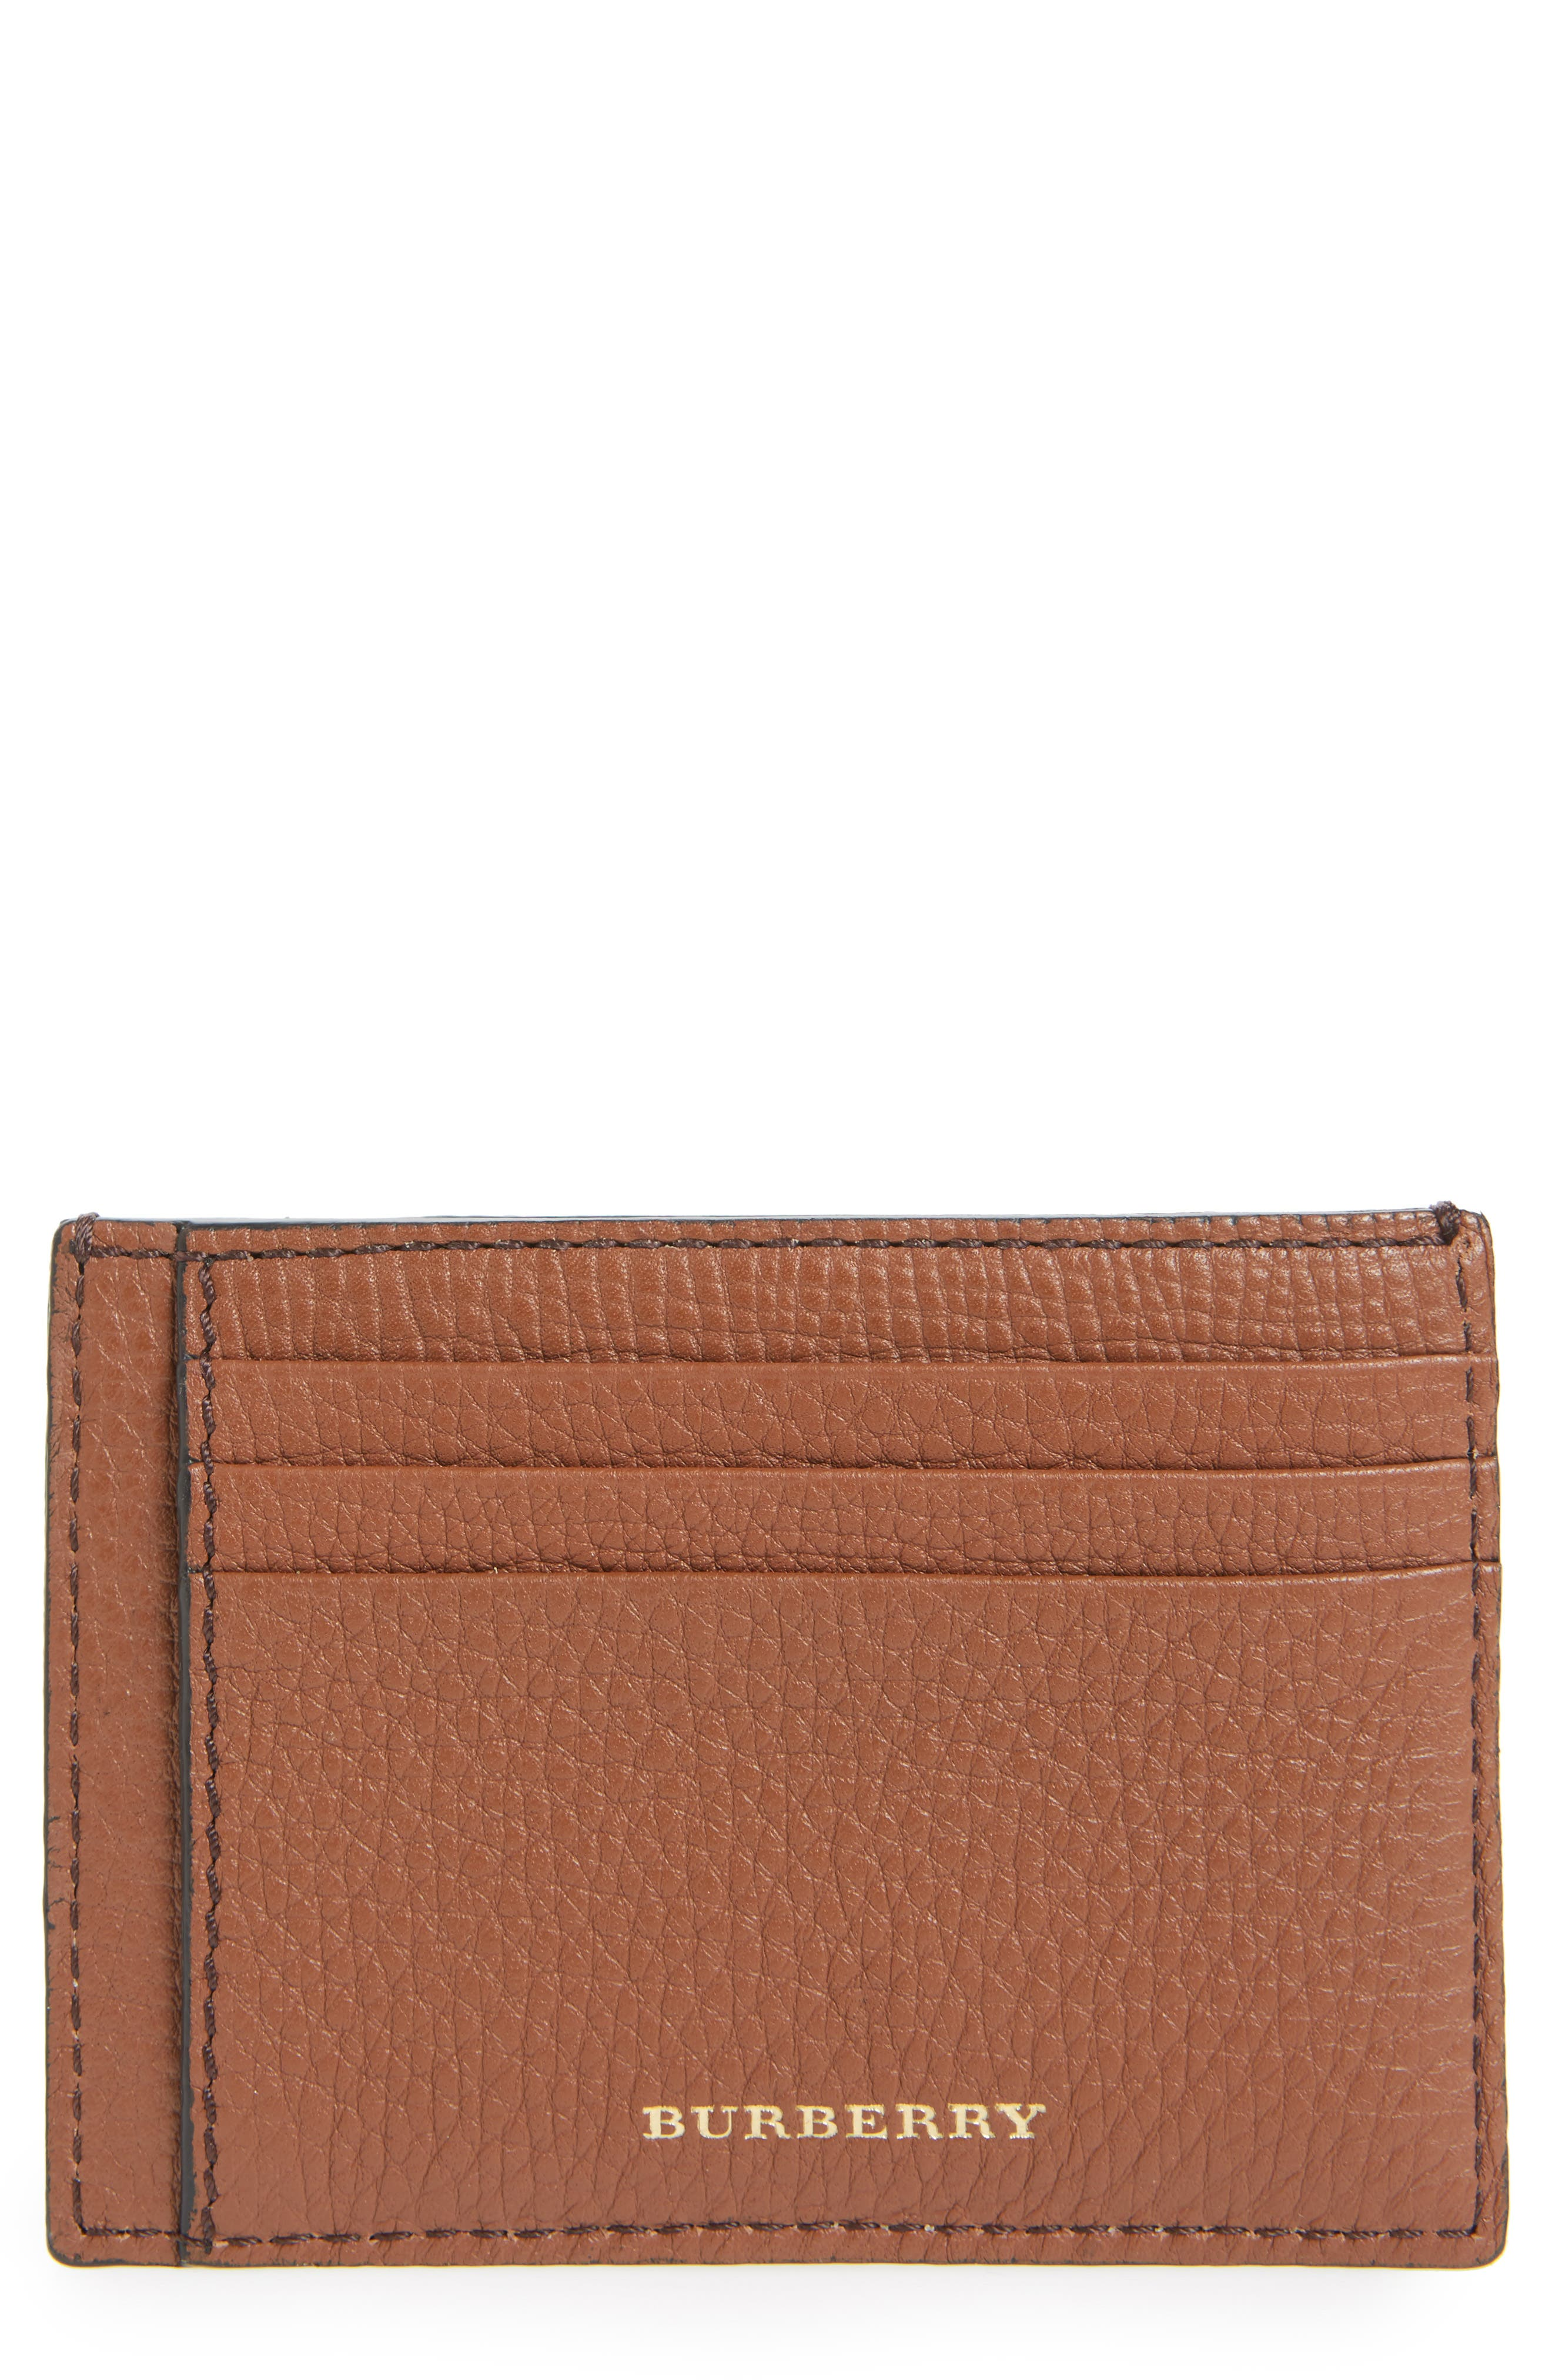 Burberry Check Leather Money Clip Card Case